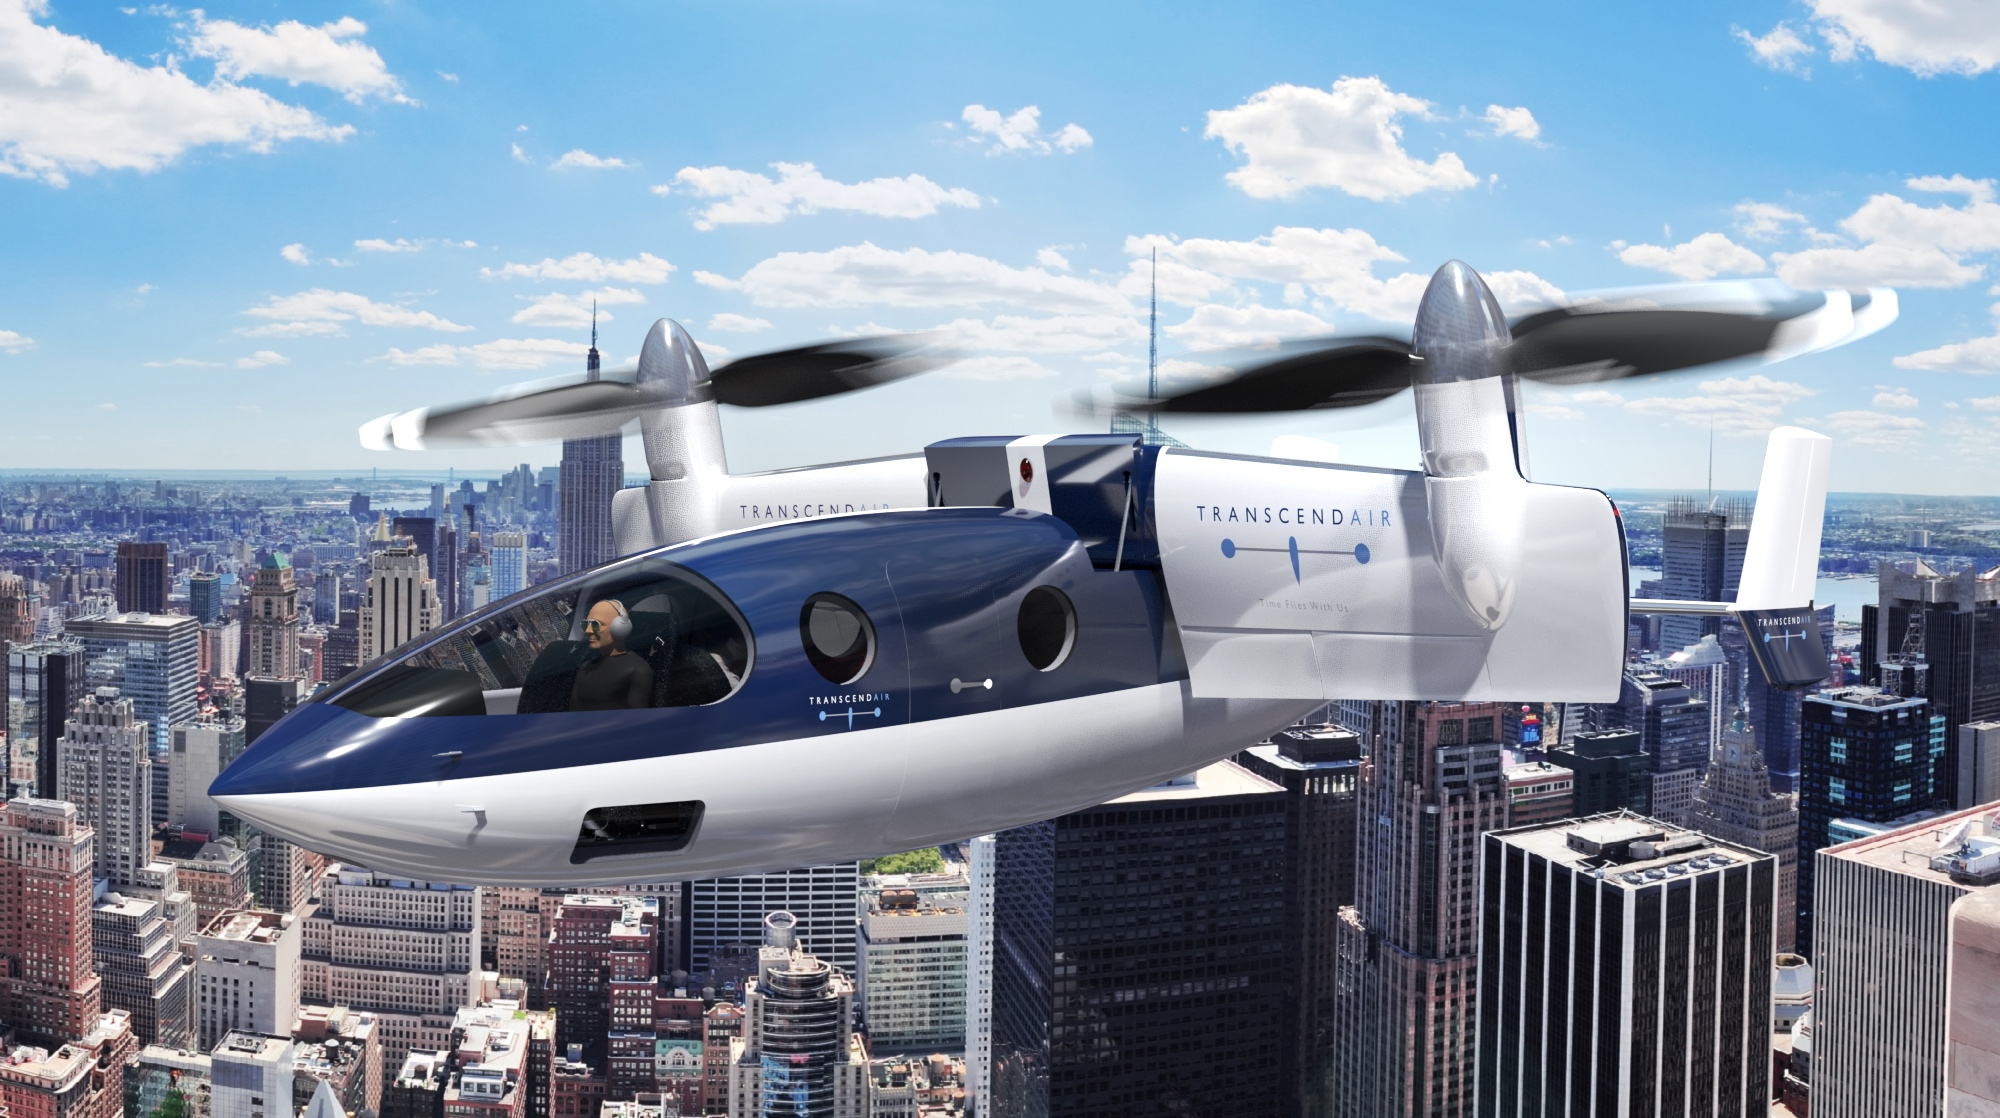 Vy 400 flying over NYC